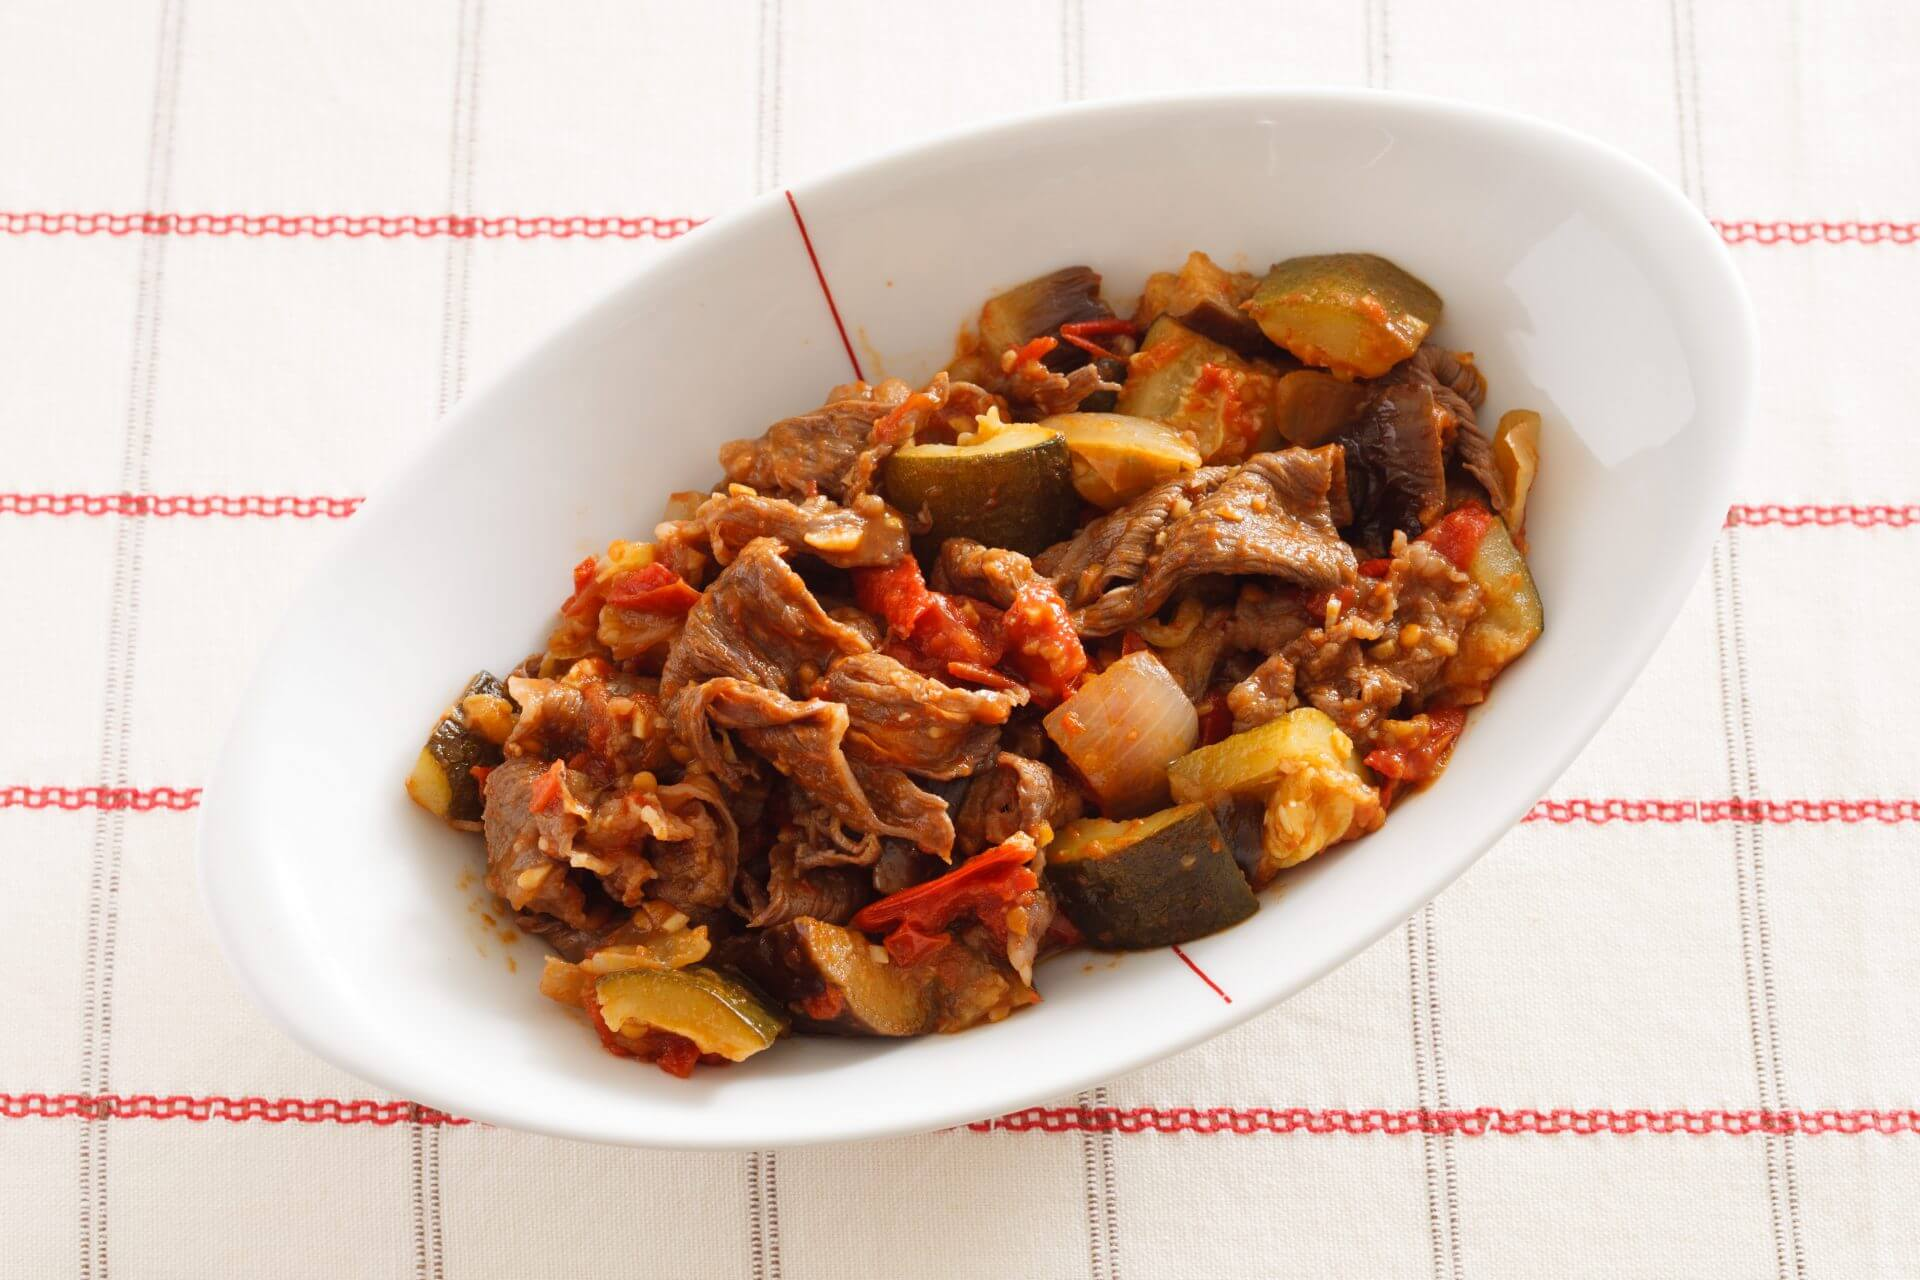 Umami-rich Beef Ratatouille